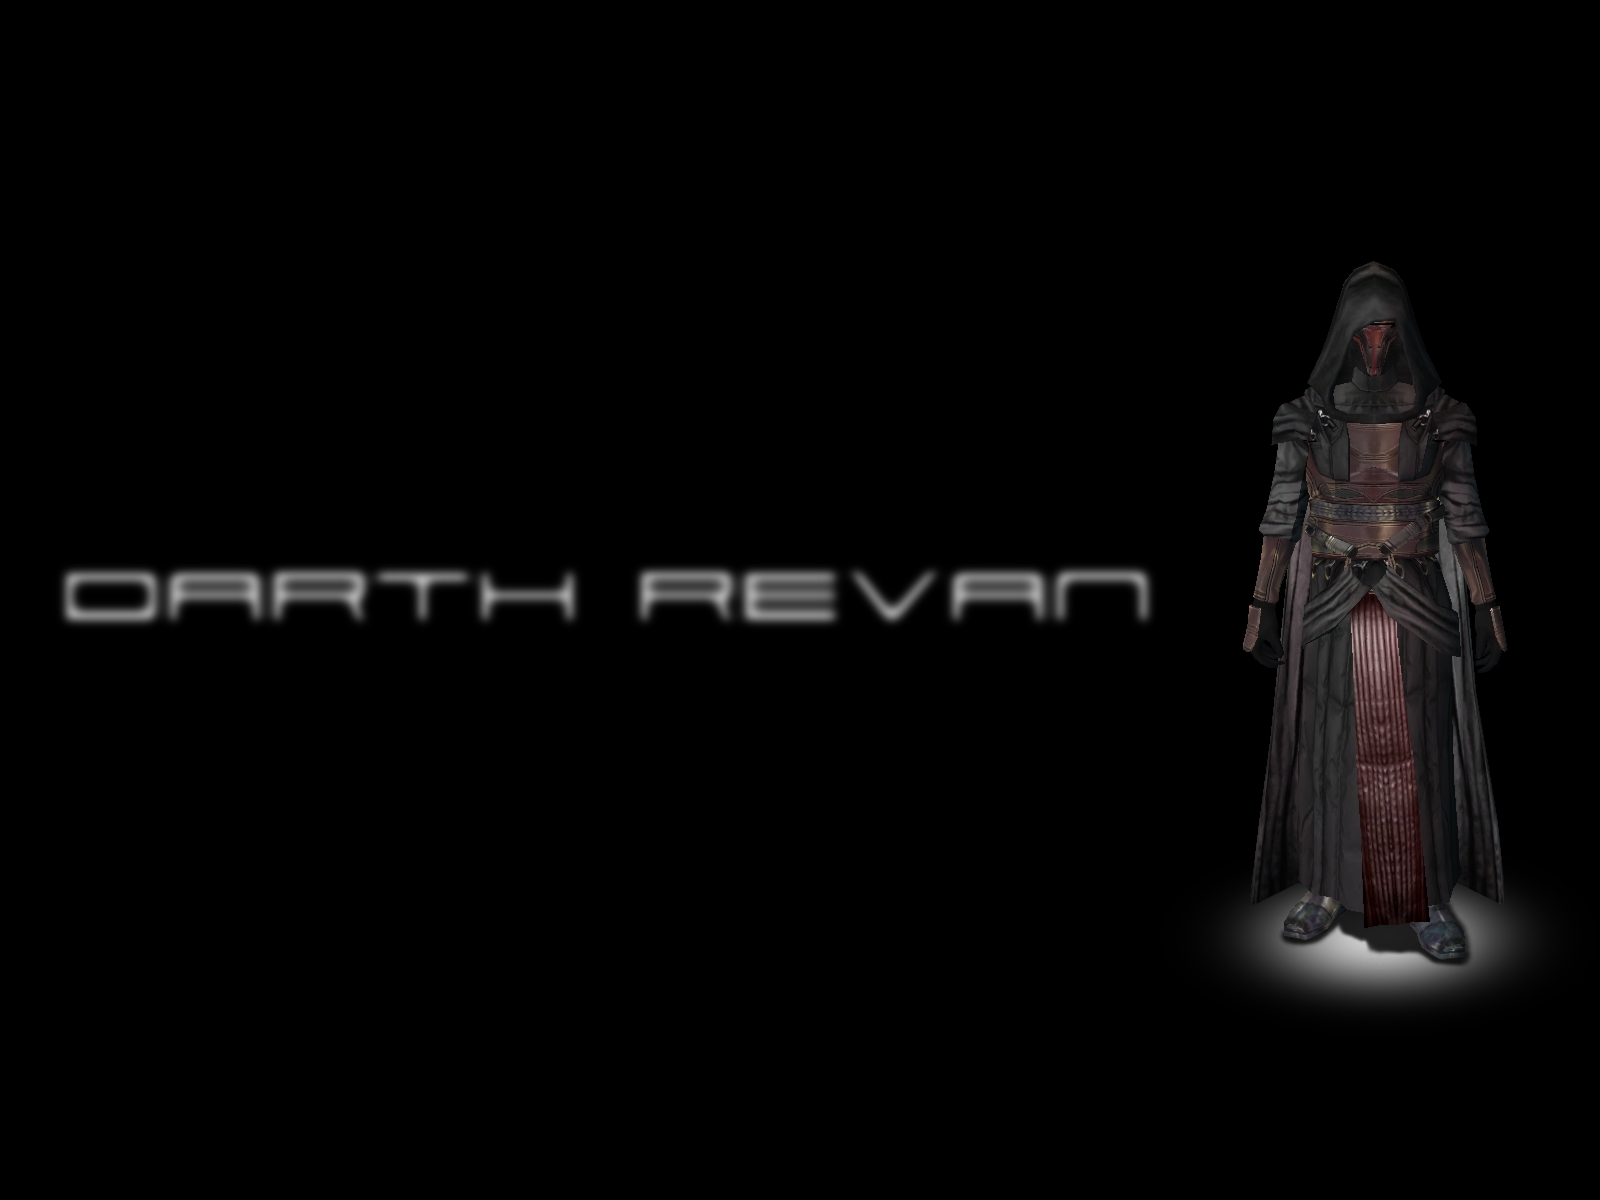 Star Wars Revan Wallpaper